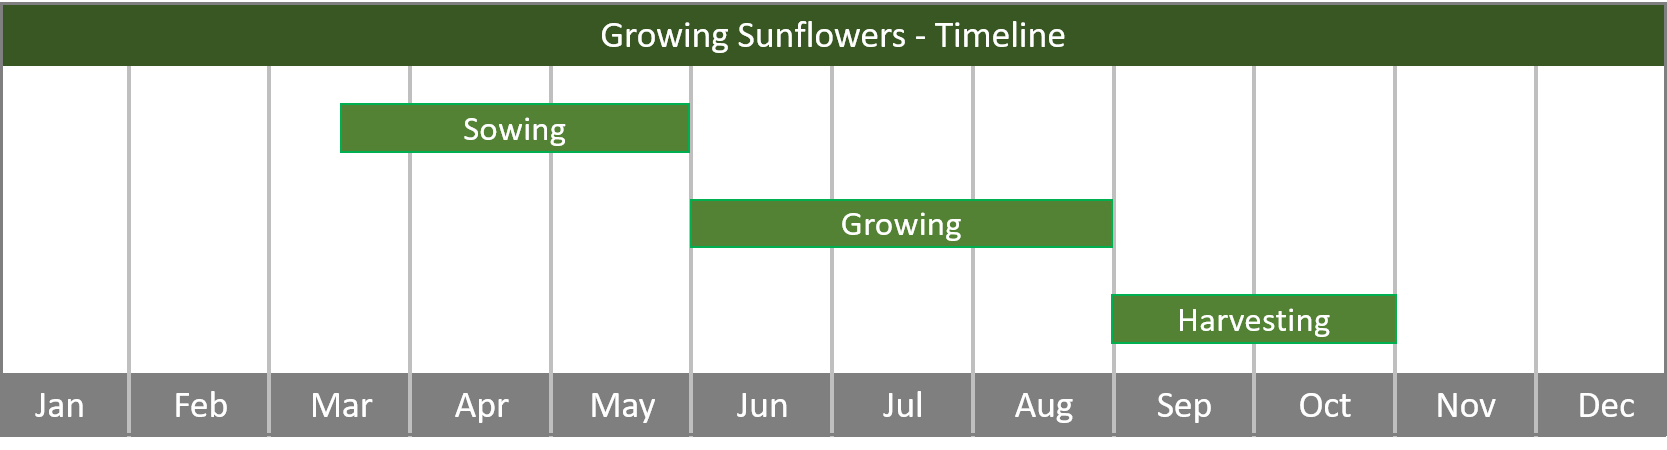 how to grow sunflowers from seed to harvest timeline